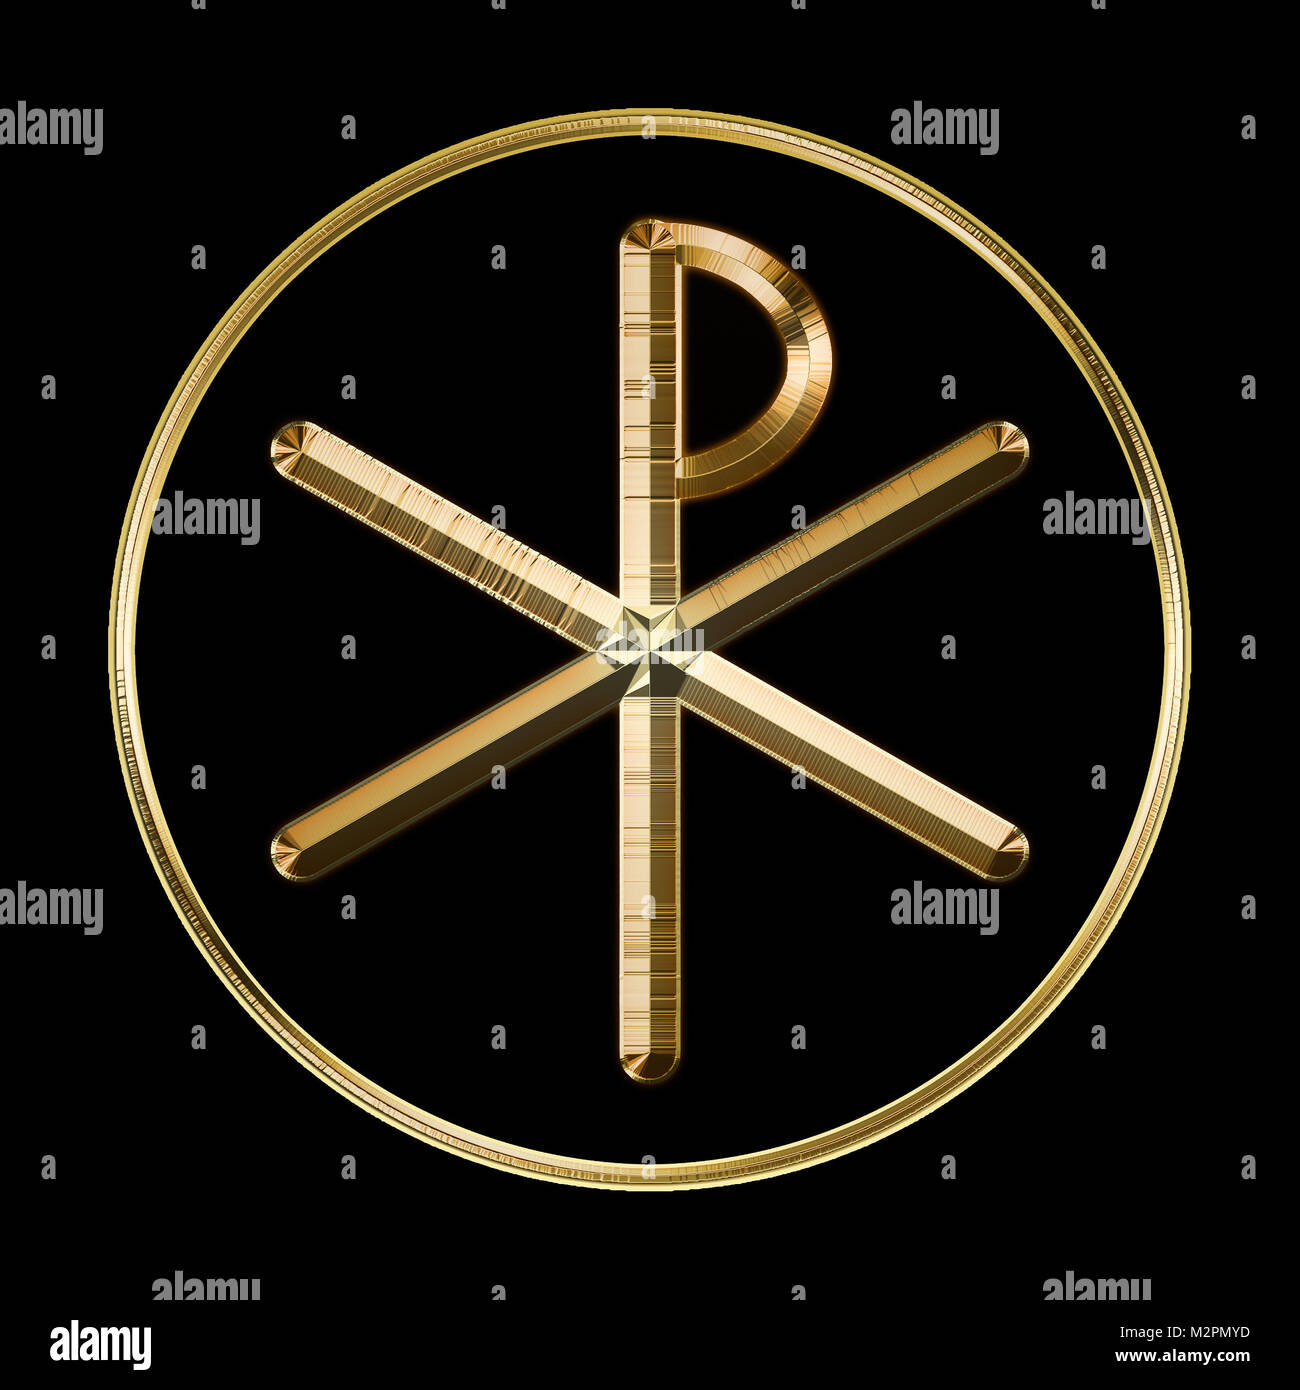 Ancient symbols stock photos ancient symbols stock images alamy the ancient christian chi rho symbol from the first two letters of christ biocorpaavc Choice Image